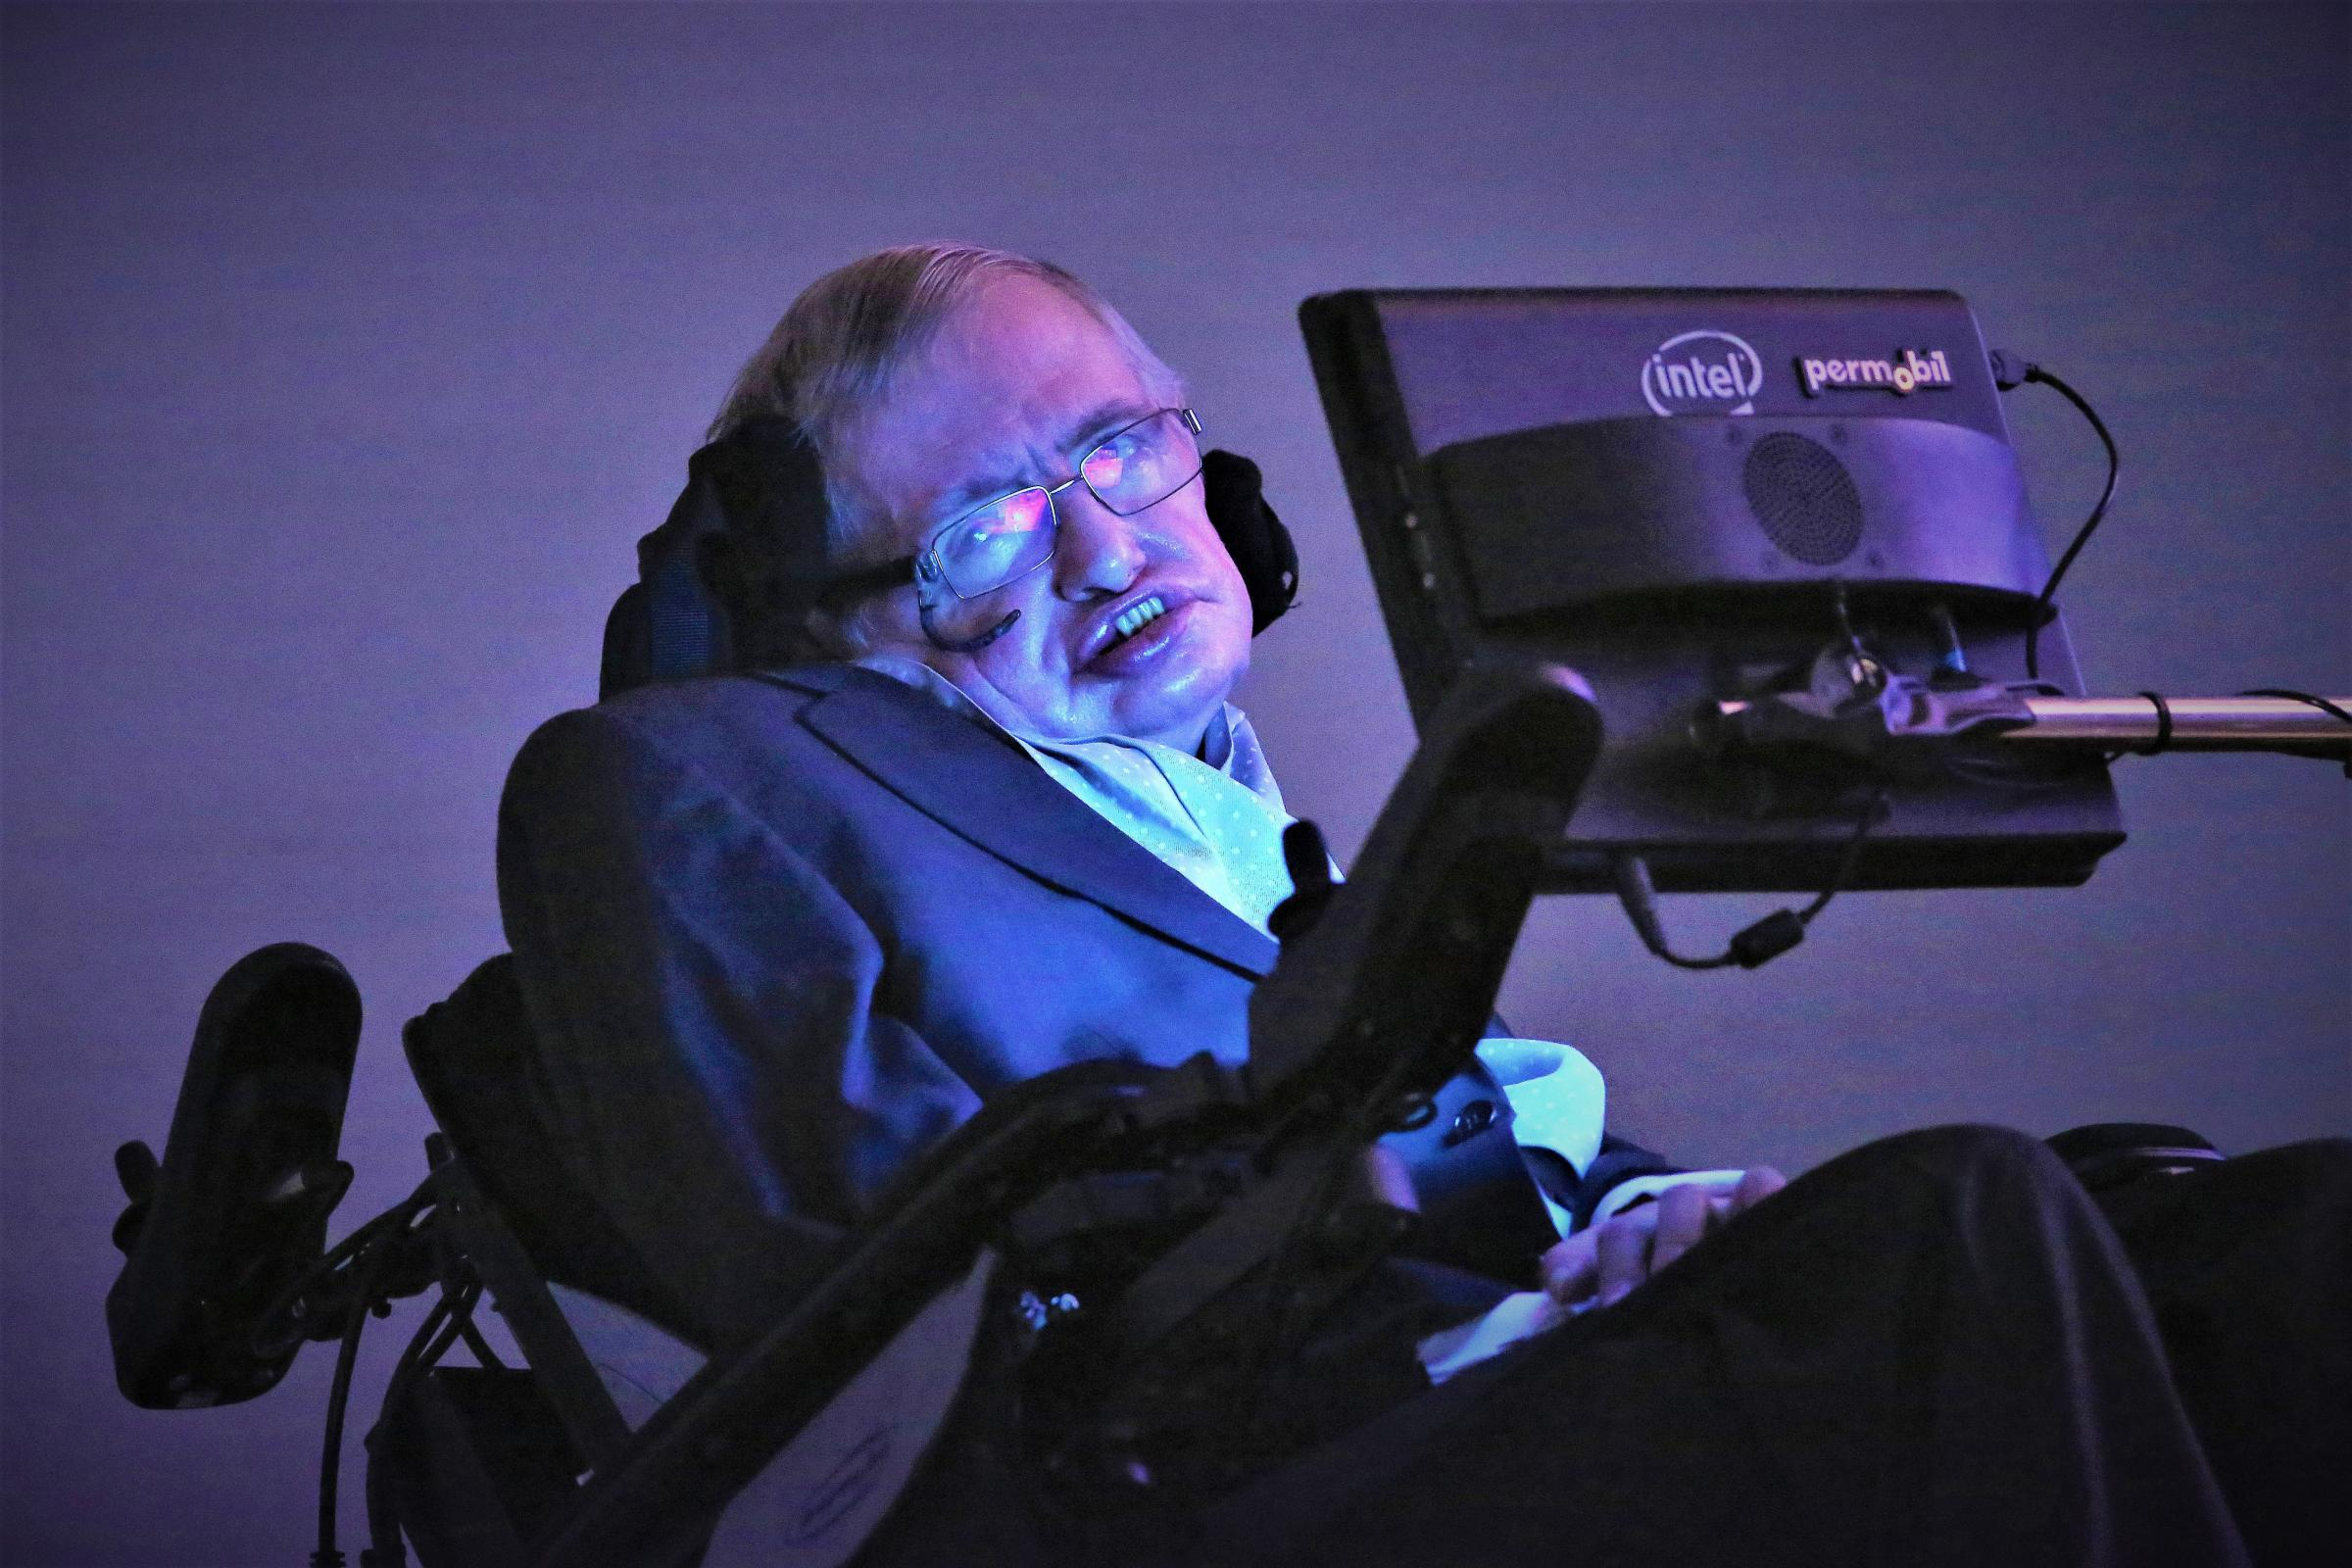 Famed scientist Stephen Hawking died at the age of 76 earlier this week